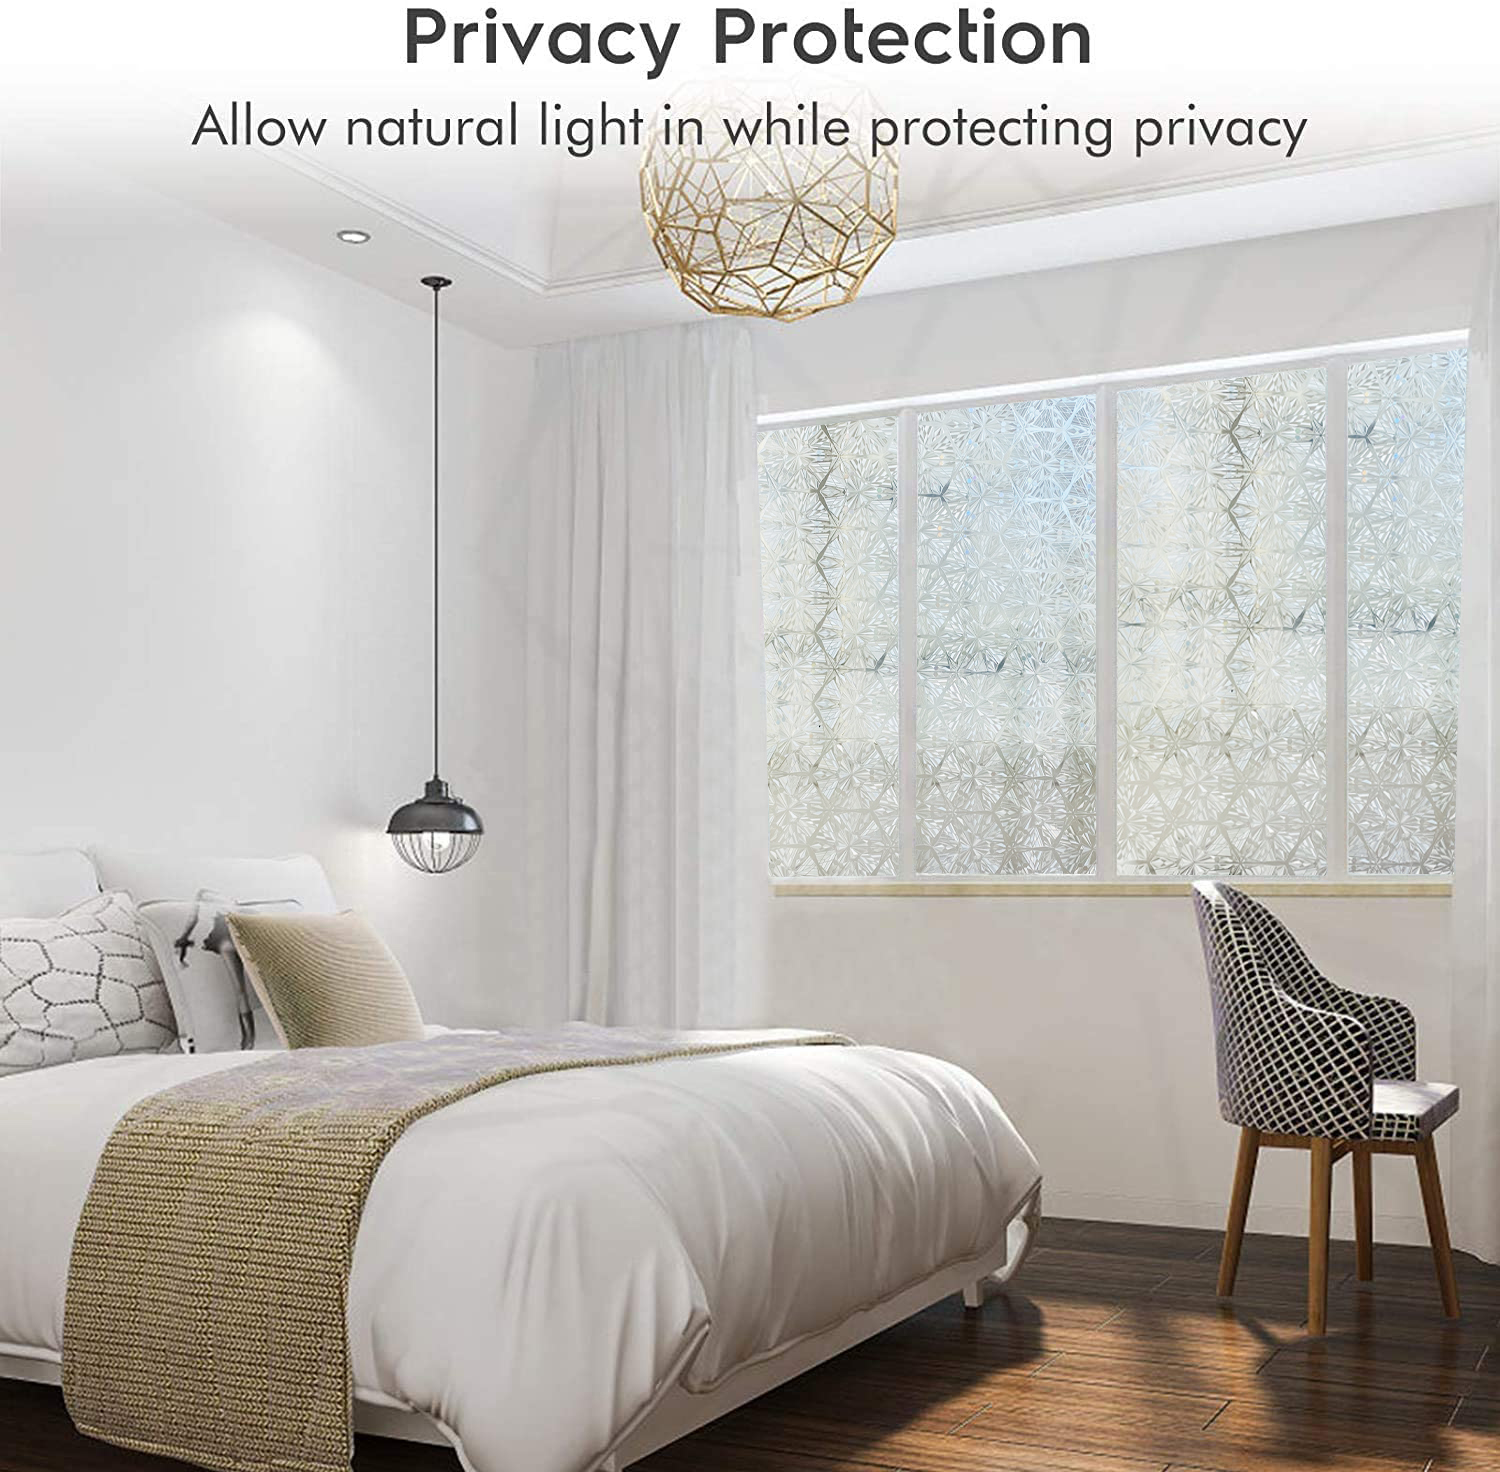 Privacy Stained Window Film Non-Adhesive Frosted Decorative Glass Film Static Cling Rainbow Window Stickers for Home 5